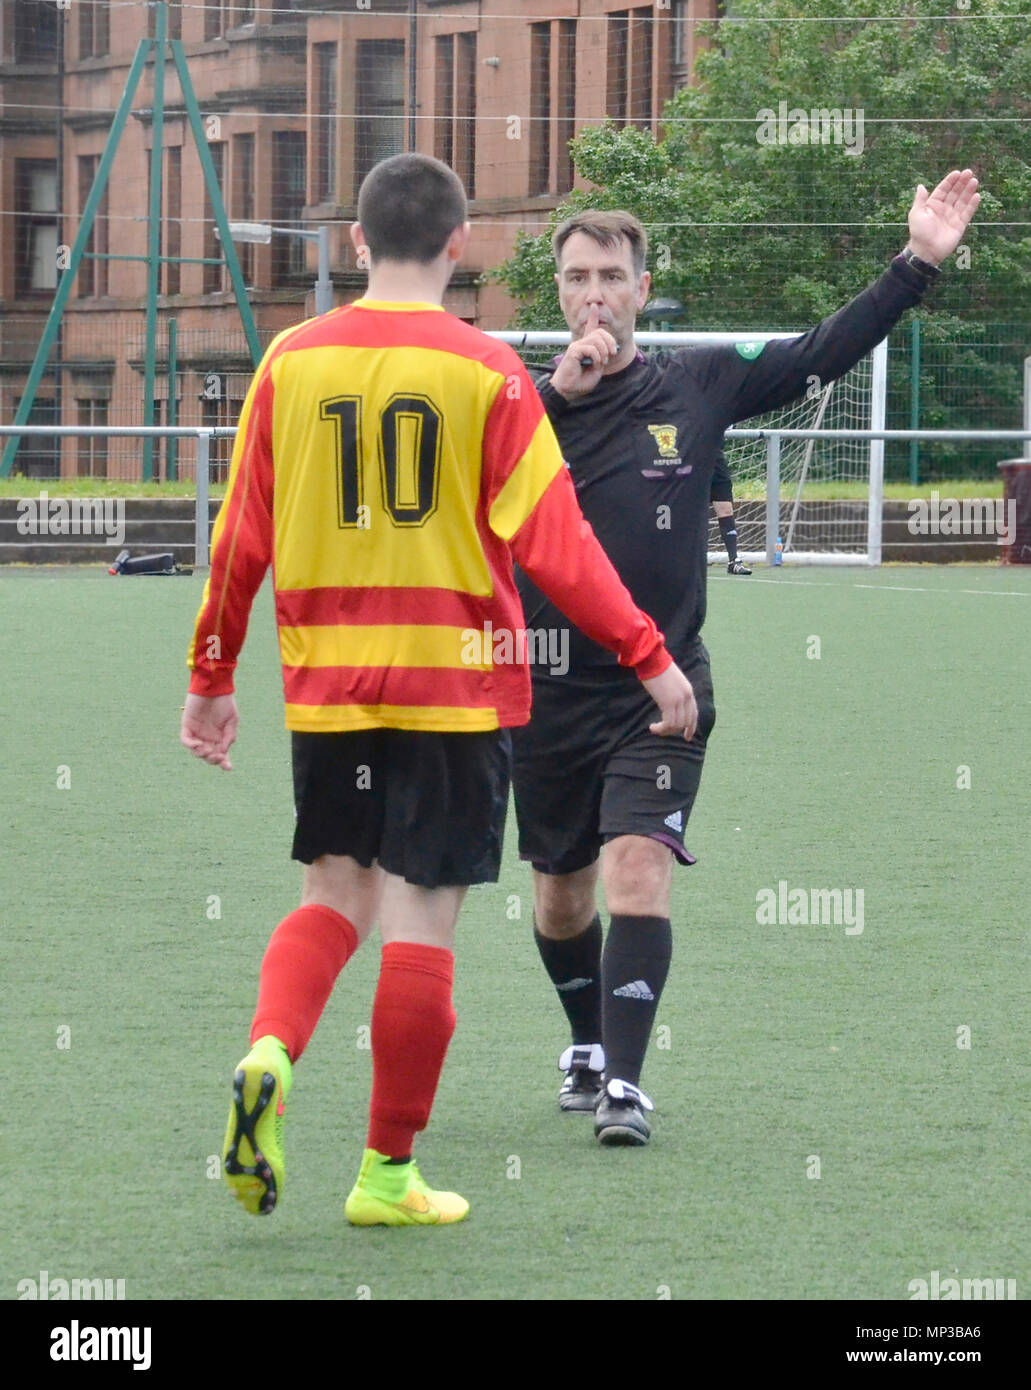 GLASGOW, SCOTLAND - JUNE 8th 2014: A referee blows his whistle while a player looks on. Stock Photo